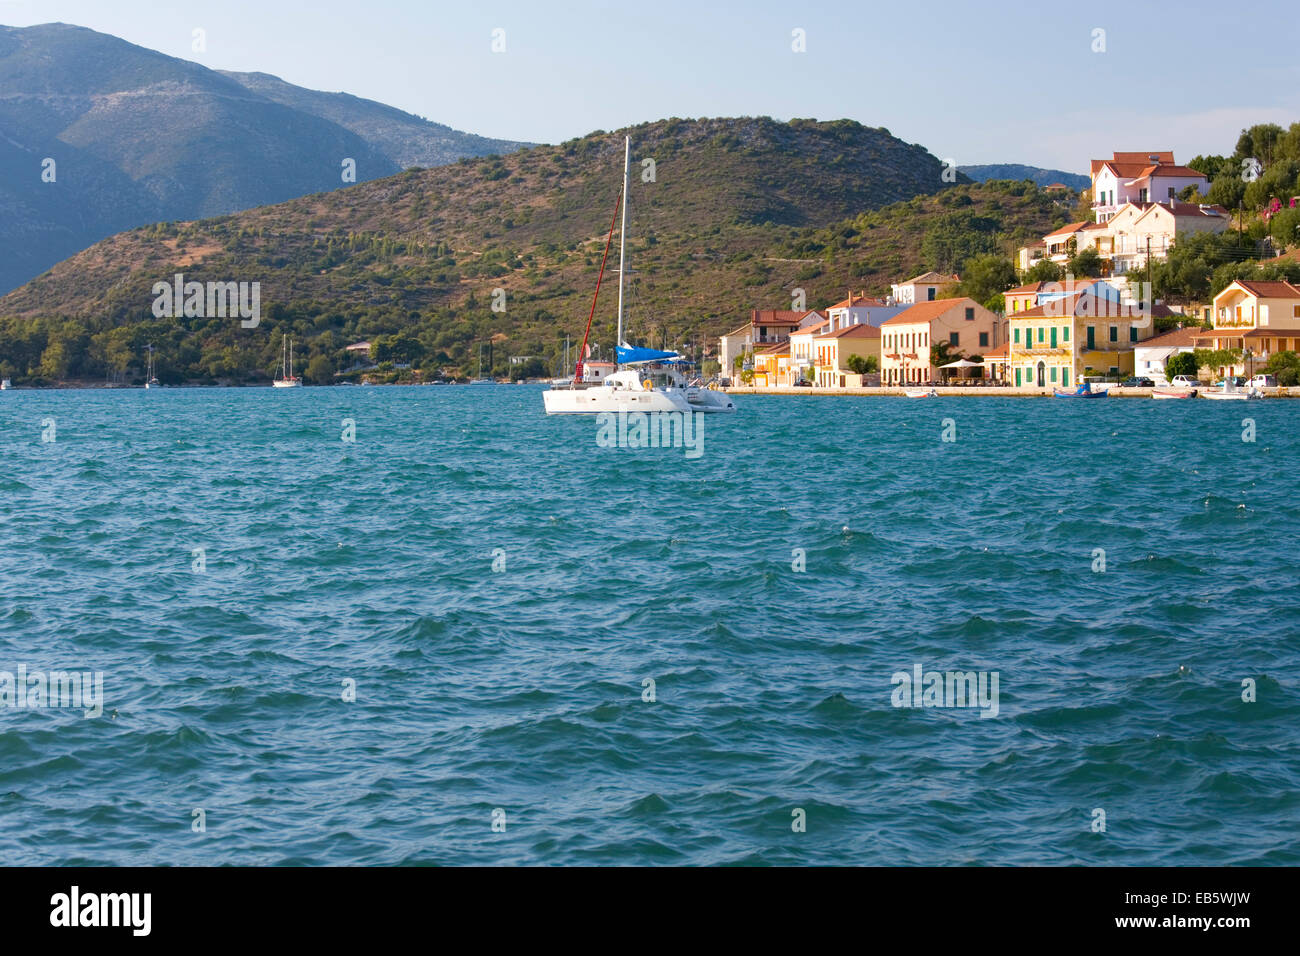 Vathy, Ithaca, Ionian Islands, Greece. View across the choppy waters of the harbour. - Stock Image